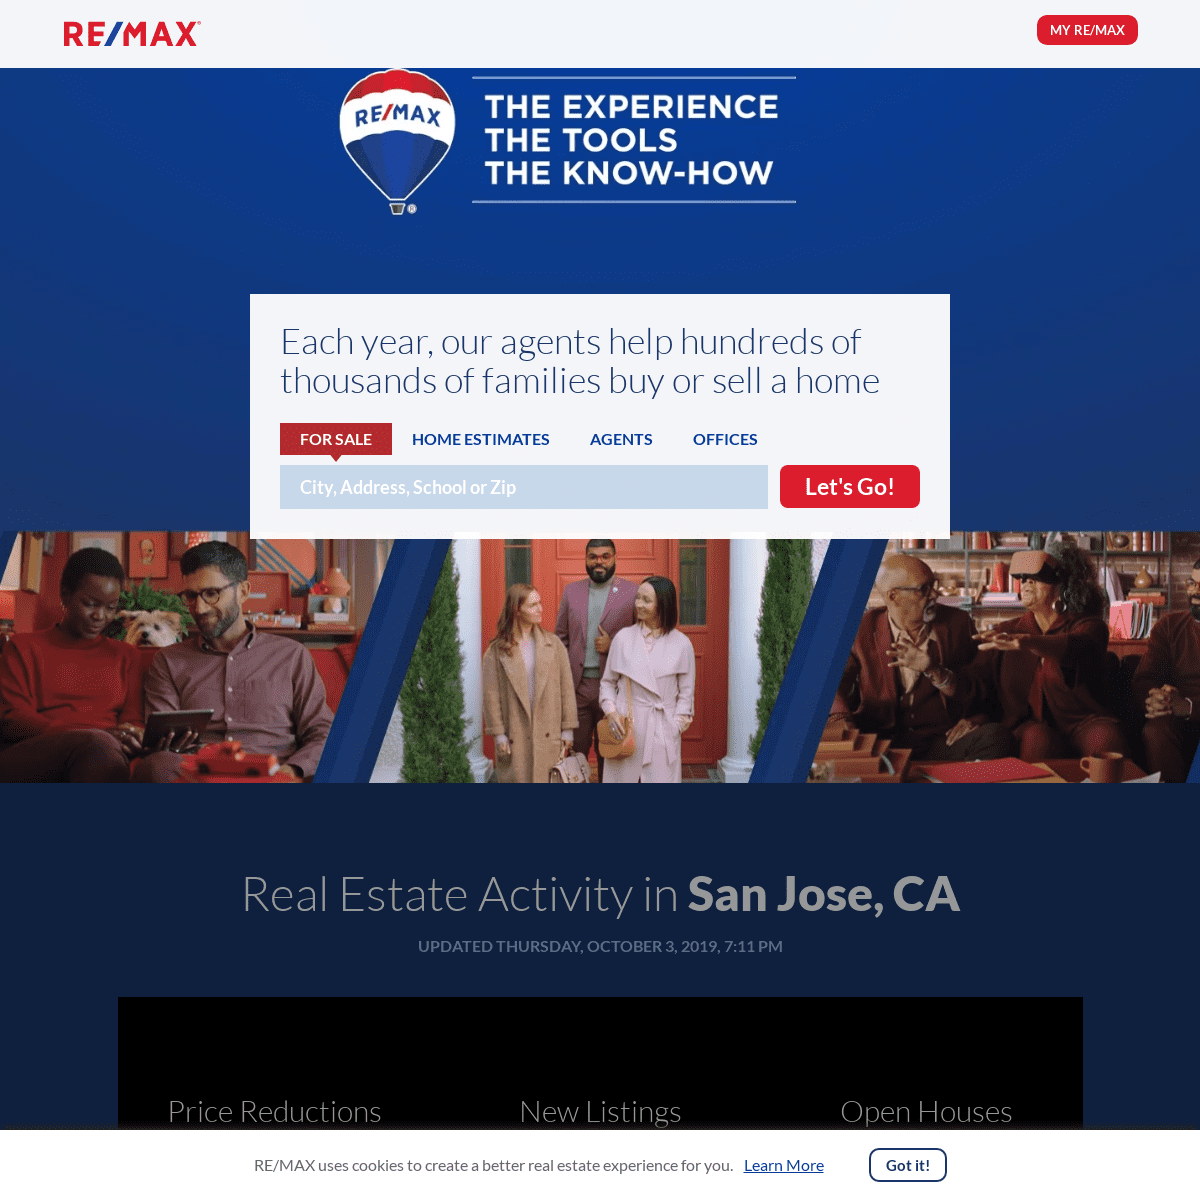 RE-MAX - Real Estate, Homes for Sale, Home Values, Agents and Advice